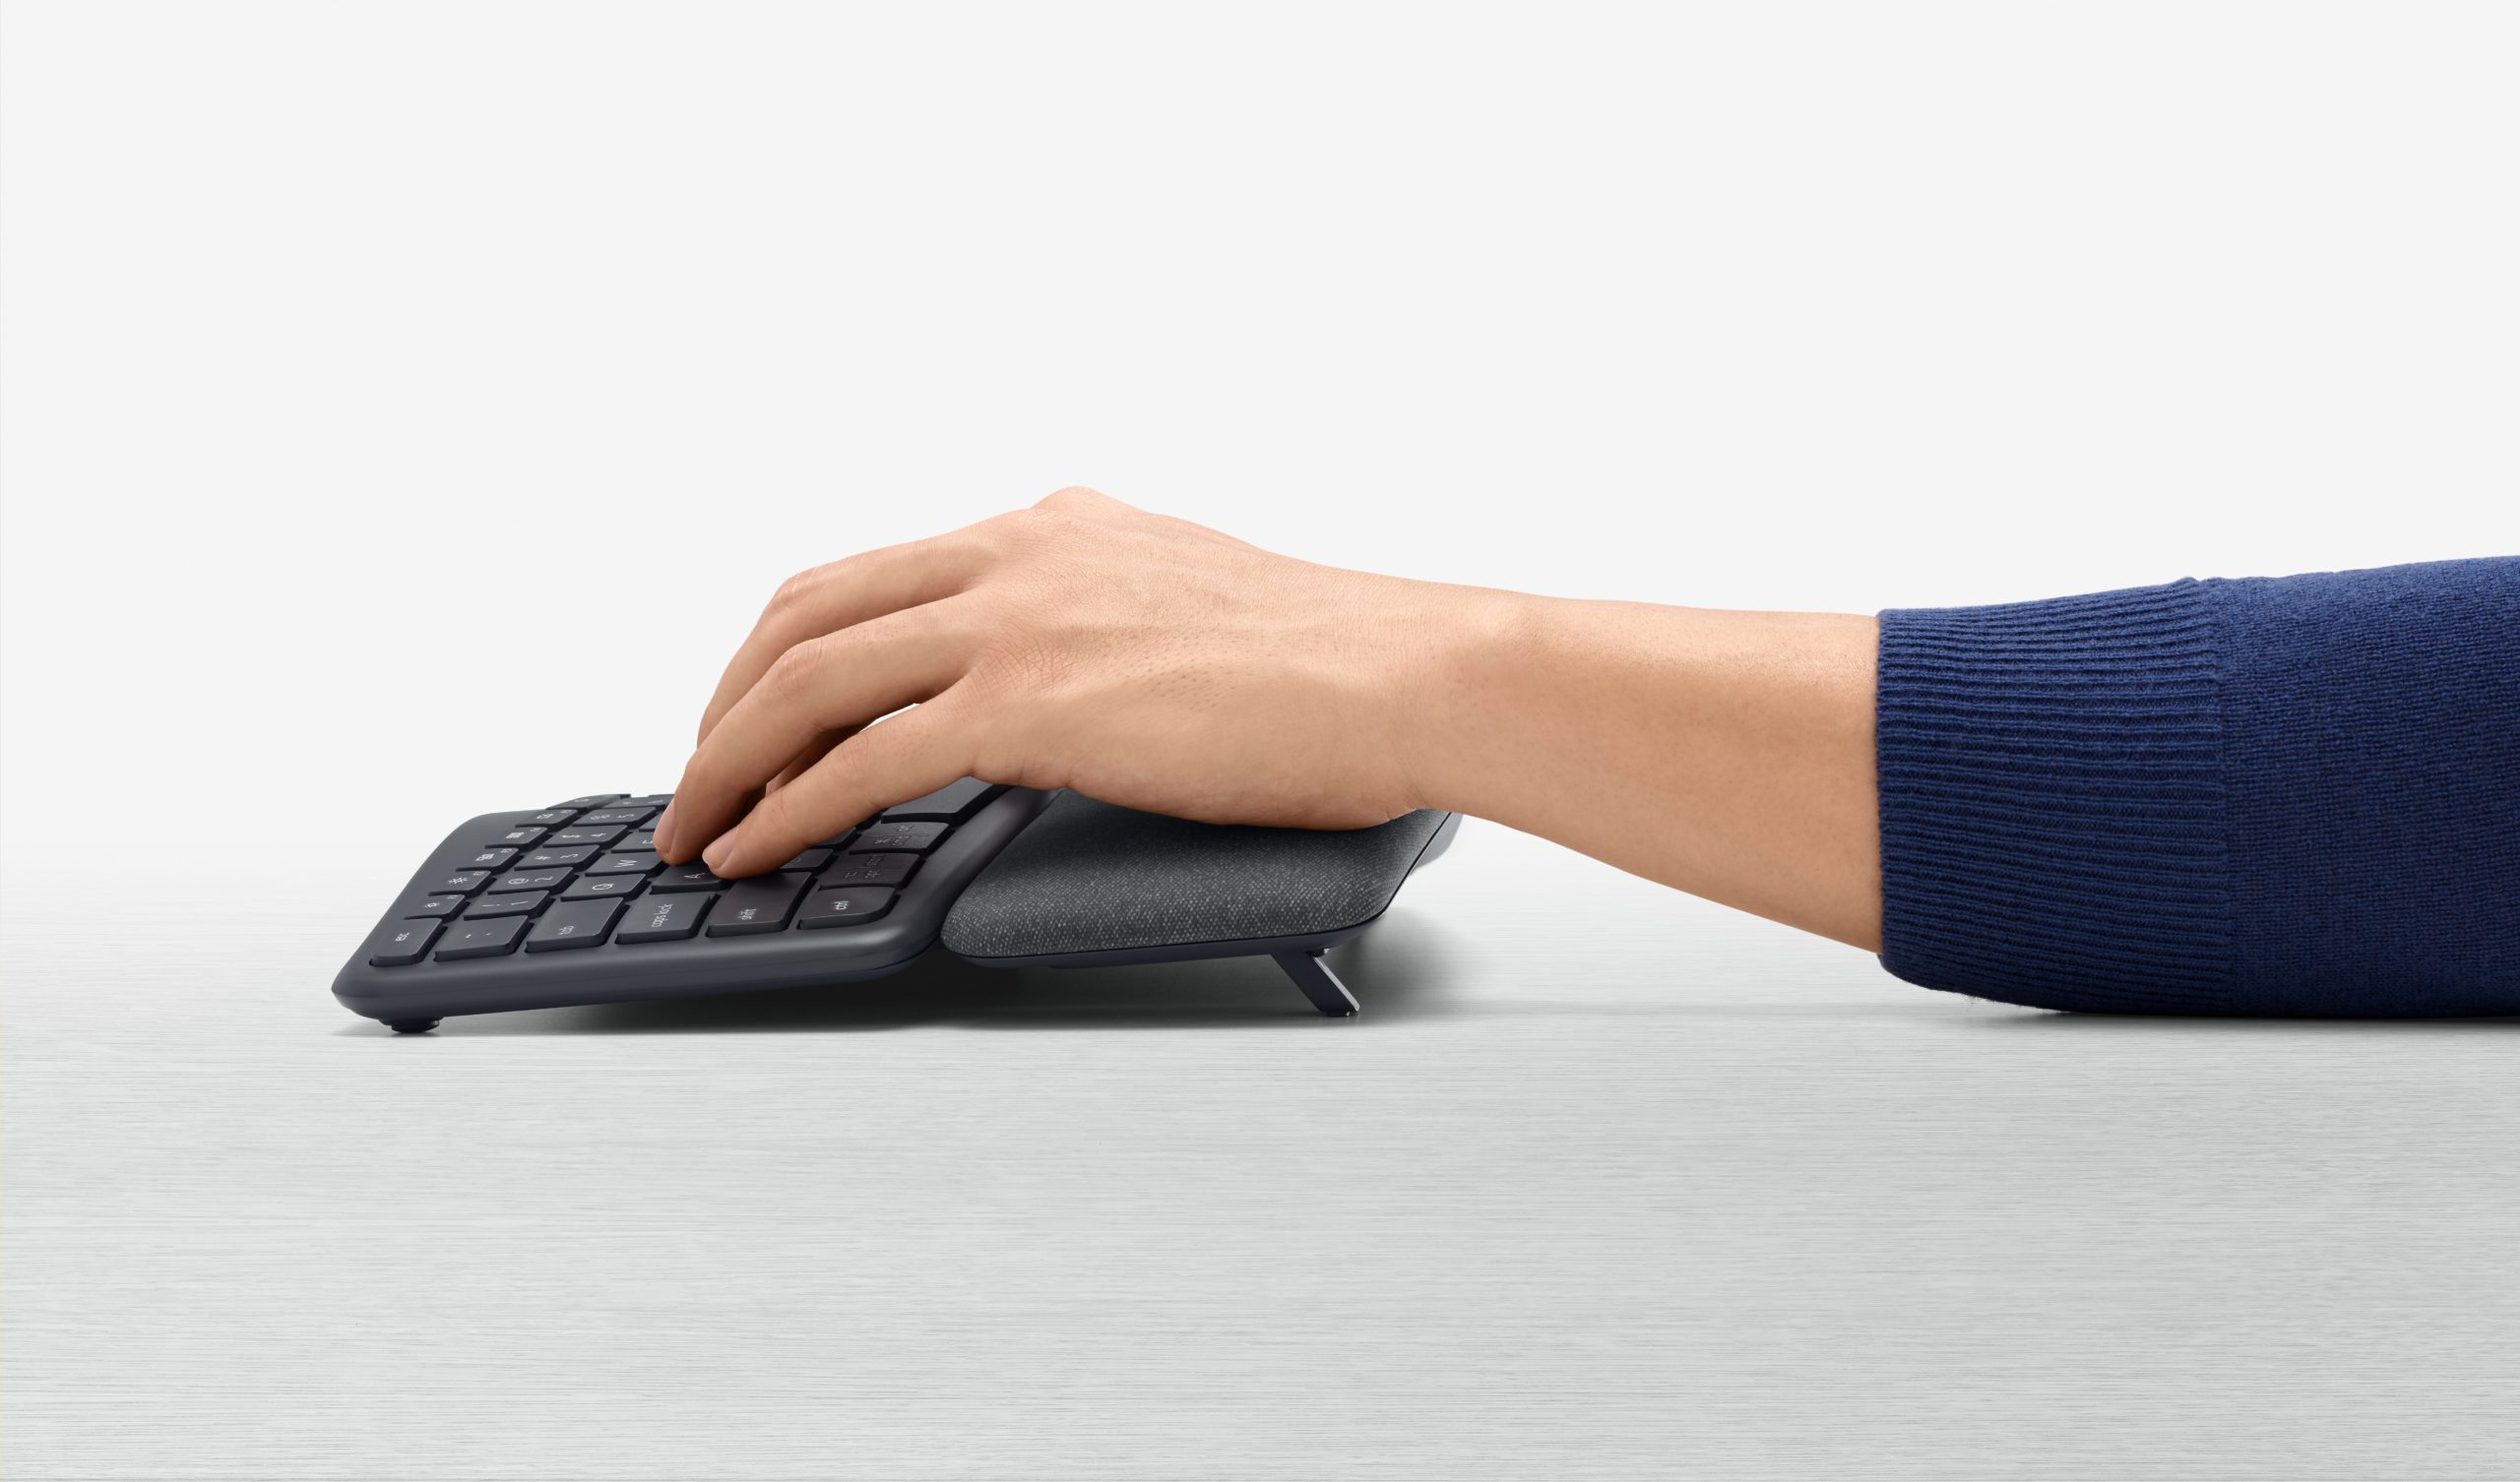 With the Logitech Ergo K860 ergonomic keyboard, it's all about comfort (and reduced muscle fatigue).